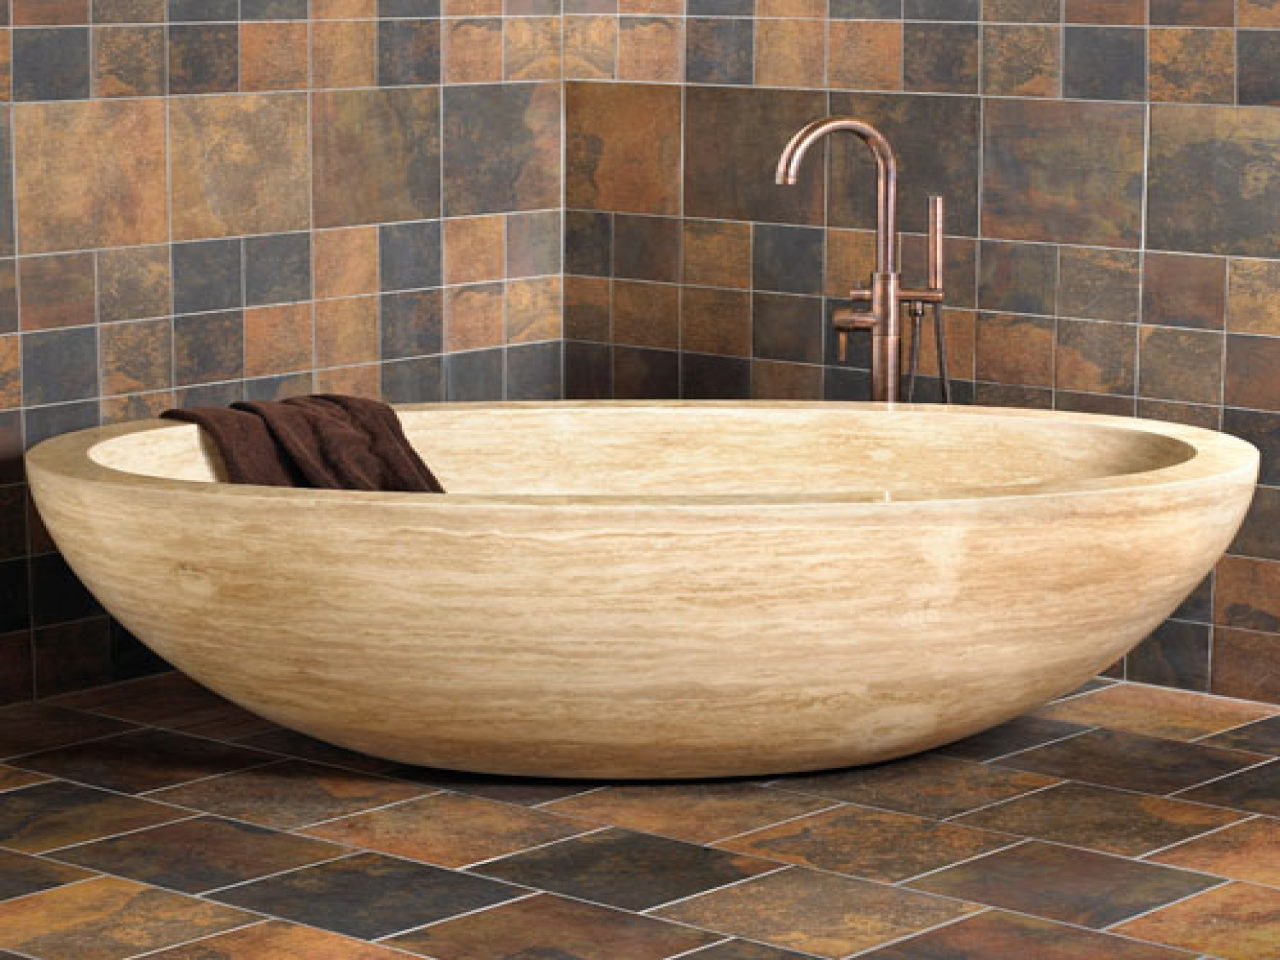 Smallest Bathtub Size-Japanese soaking